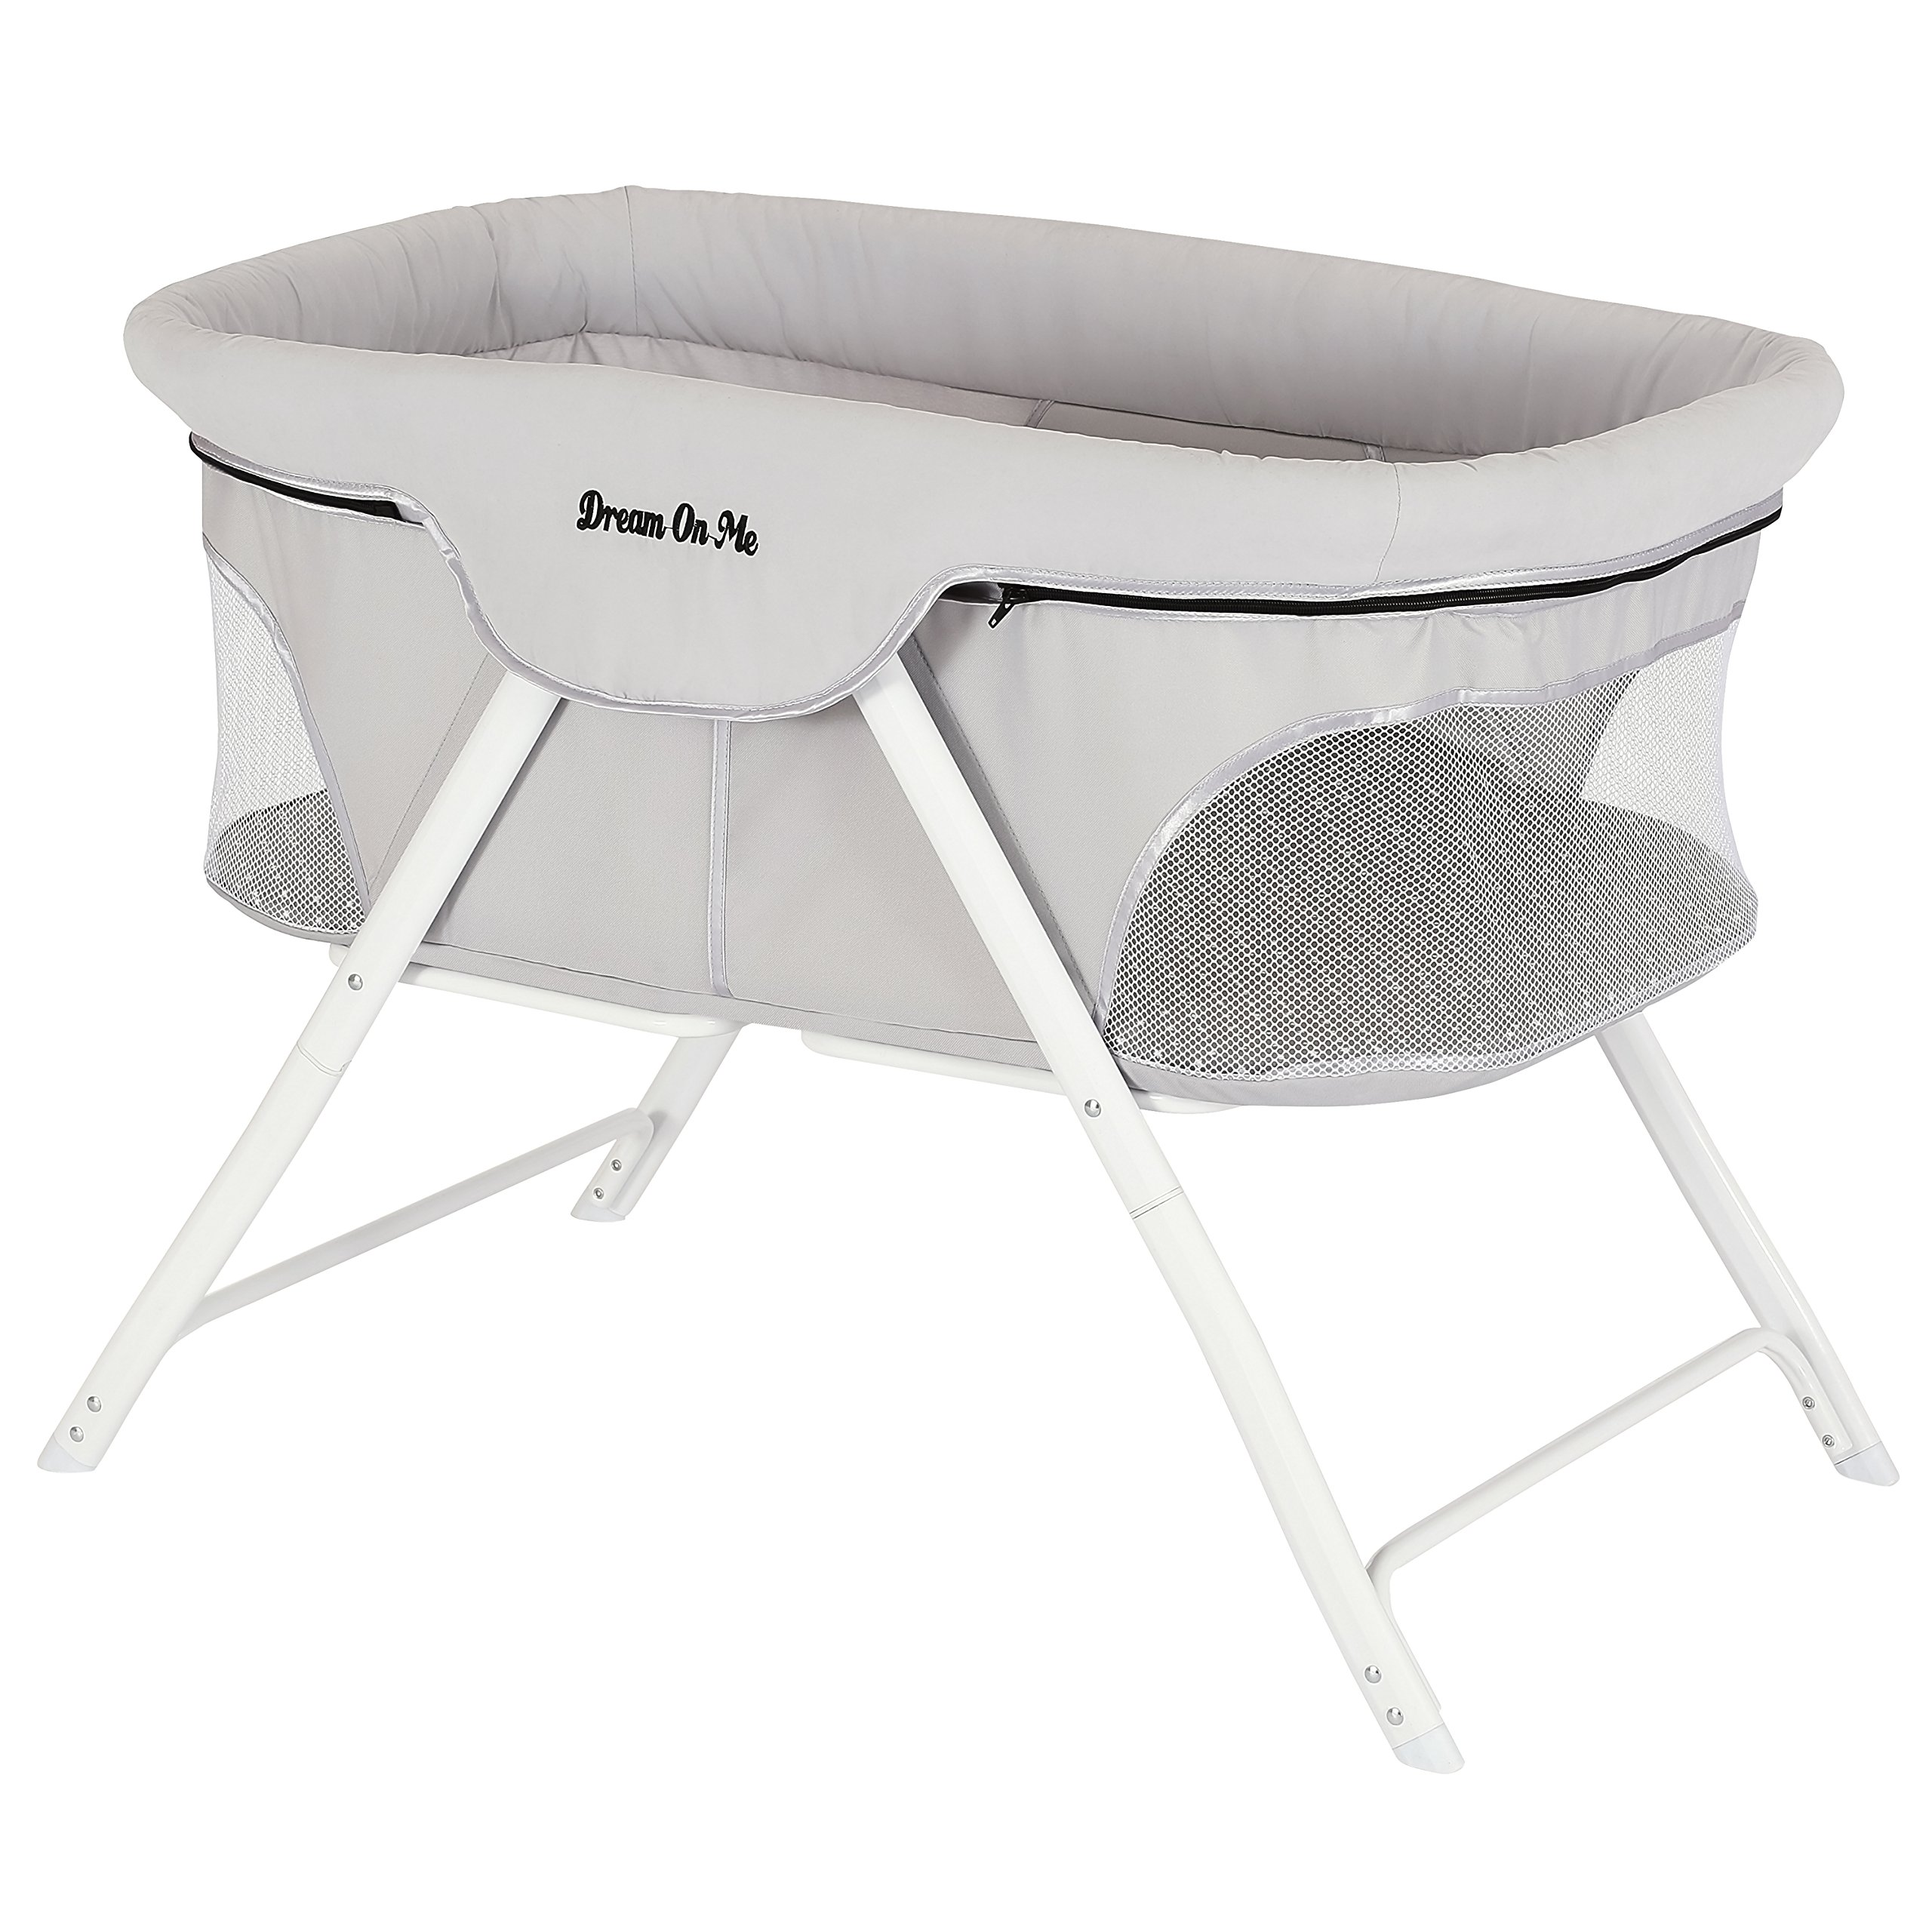 Dream On Me Traveler Portable Bassinet, Cloud Grey by Dream On Me